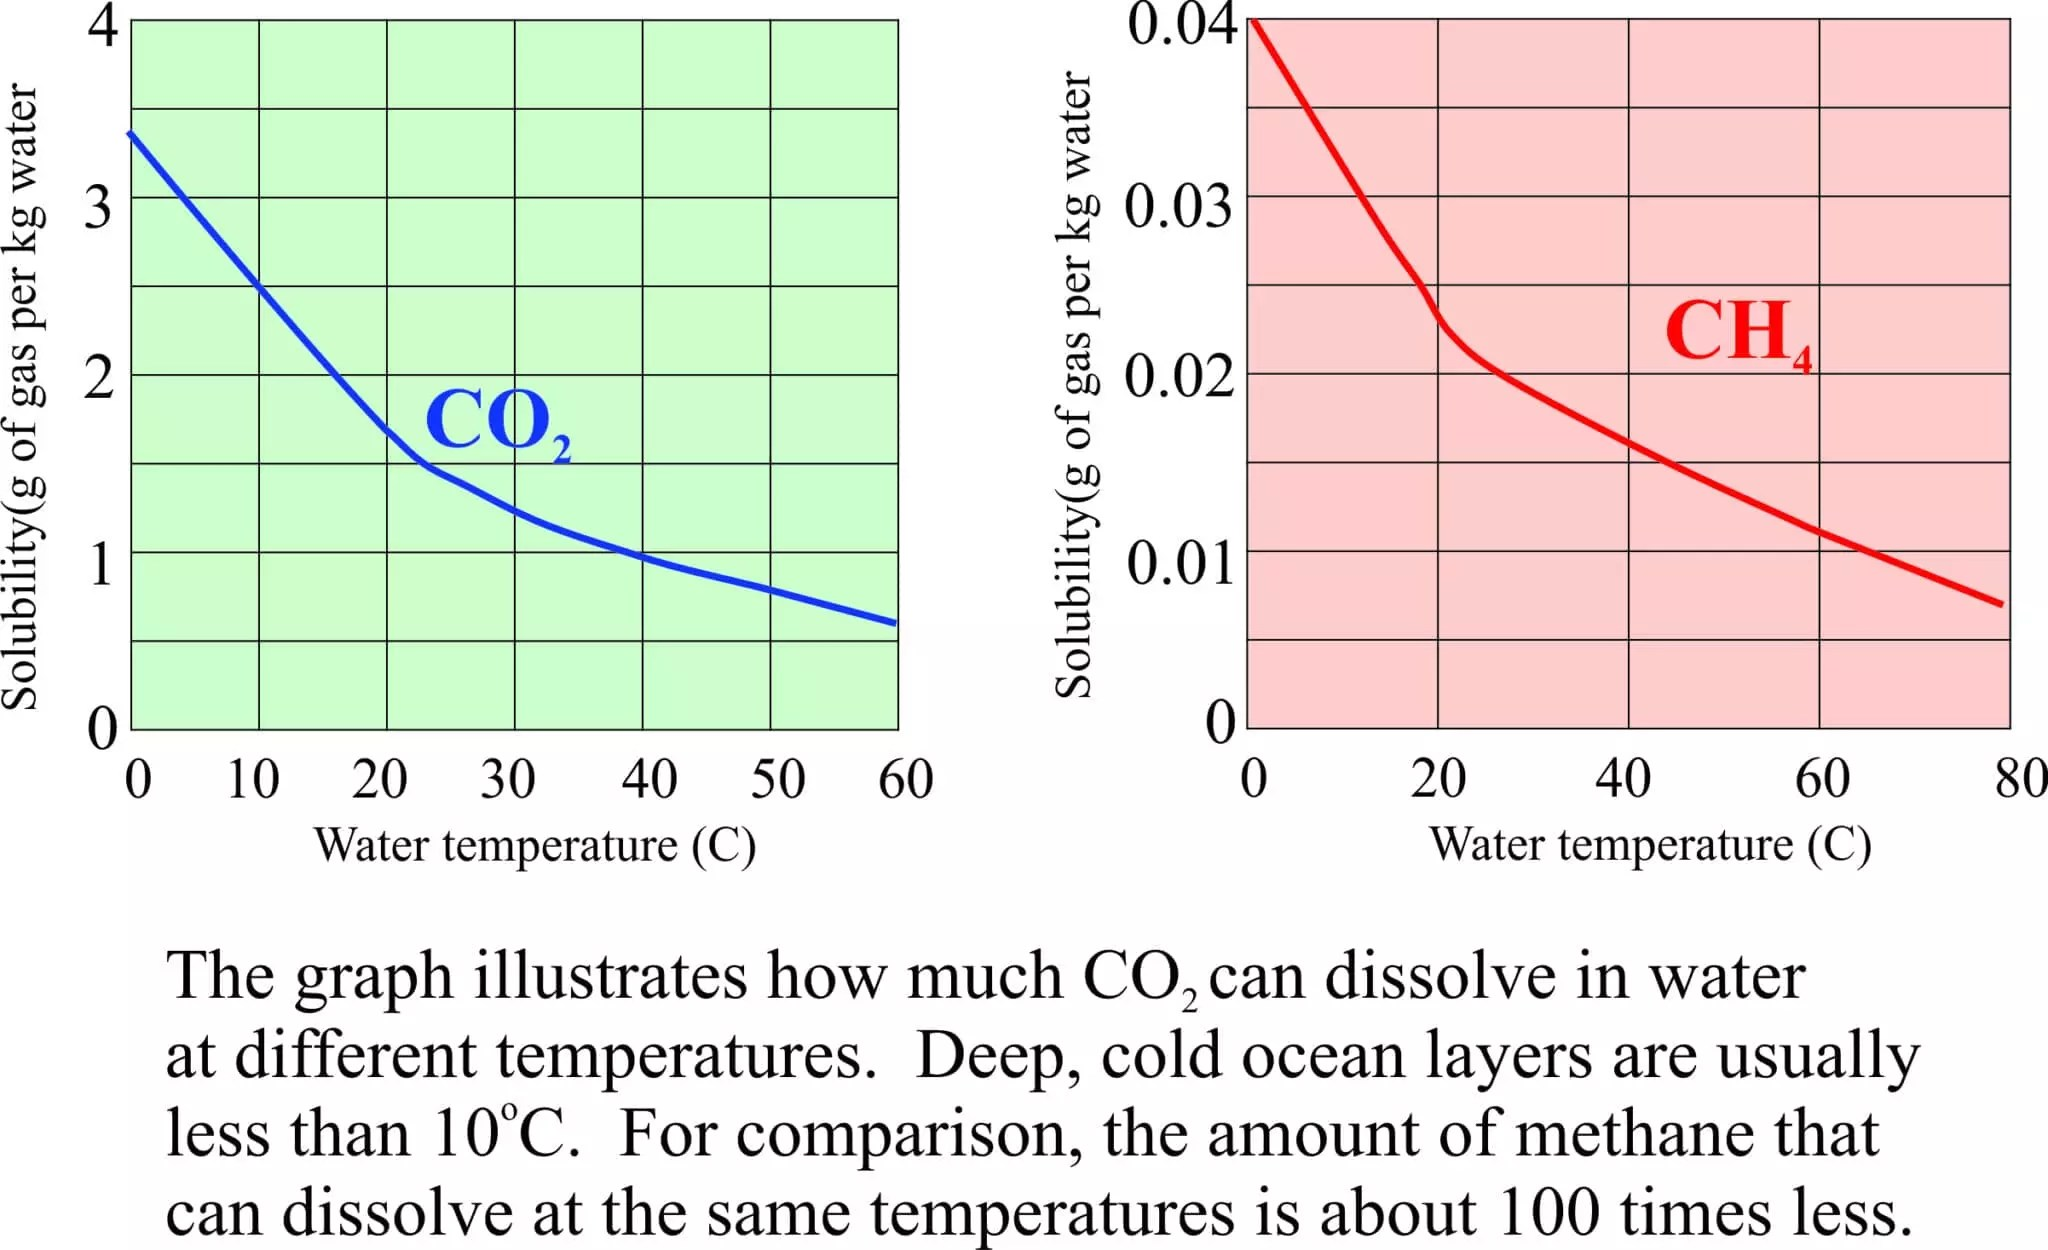 solubility of co2 in water essay The solubility of carbon dioxide in water decreases as the temperature is raised, and it is driven off into the atmosphere the concentration of dissolved carbon .